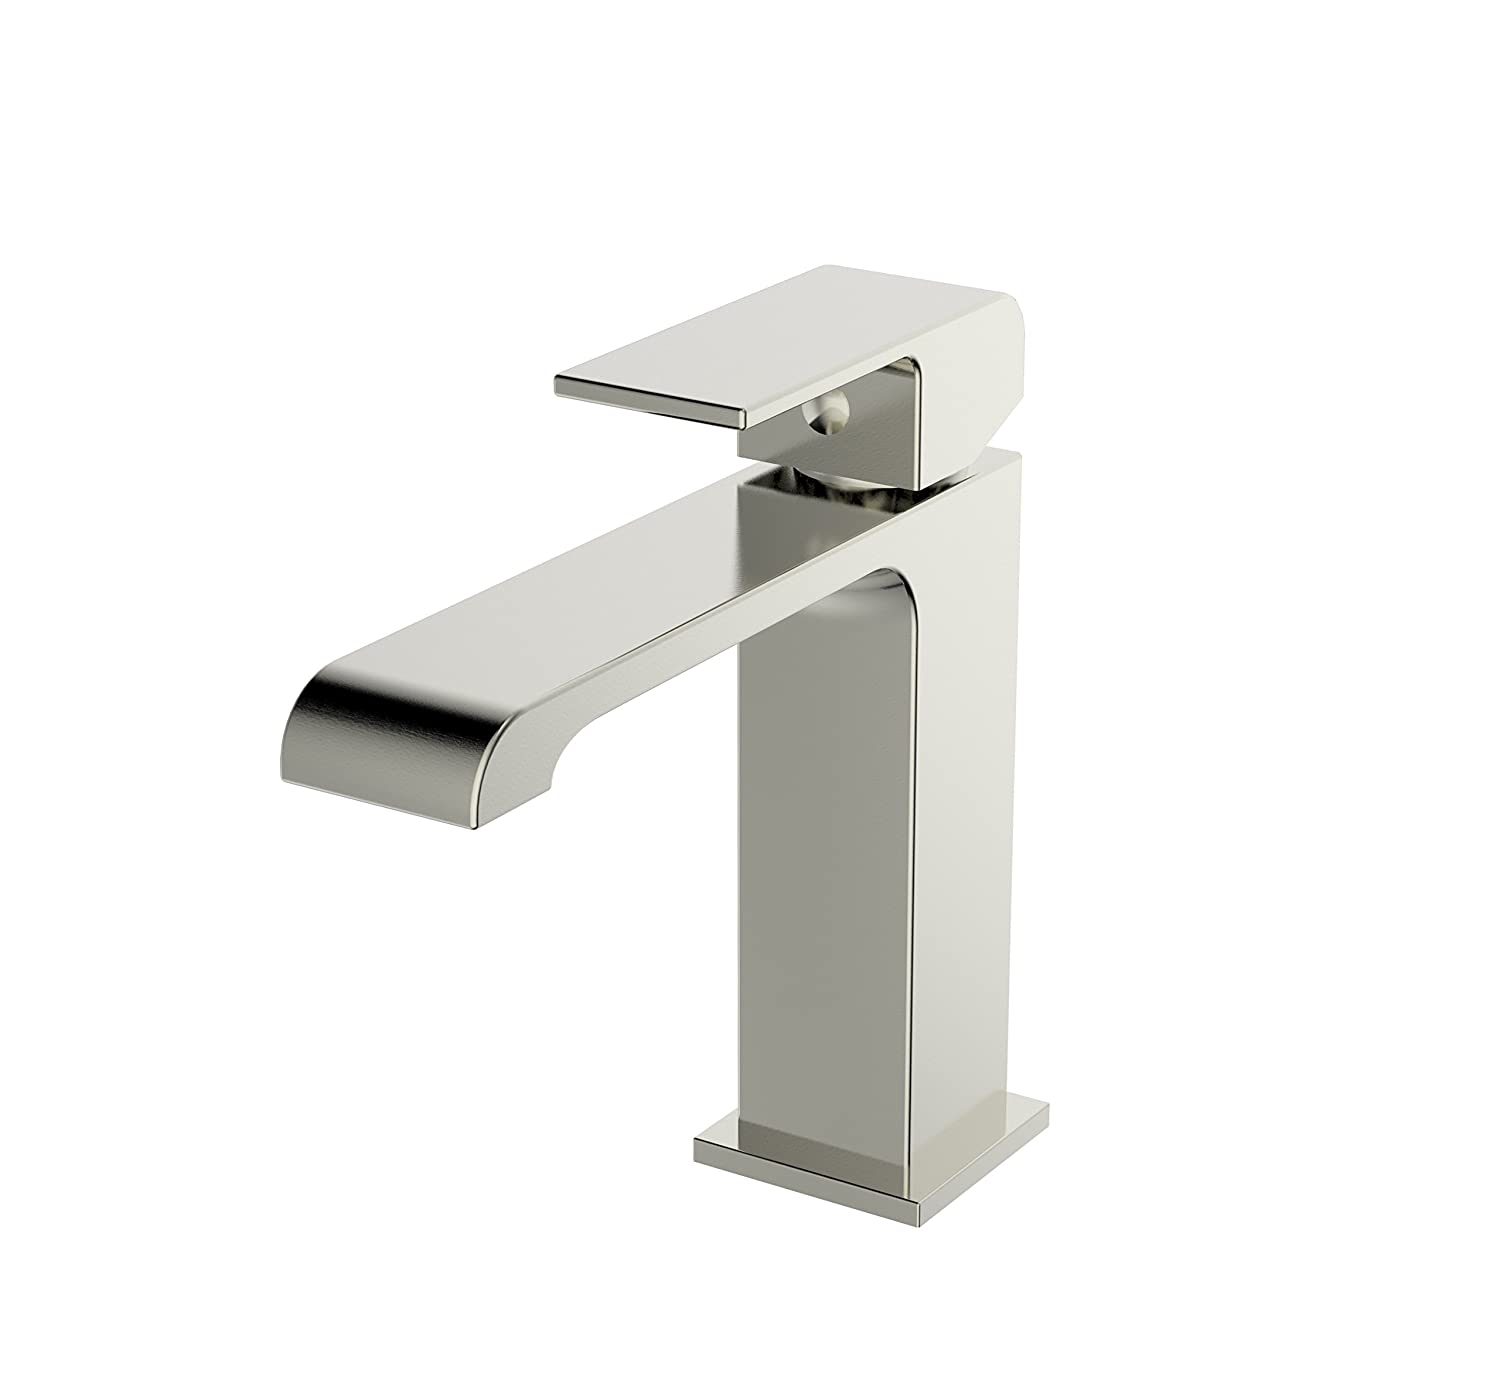 Amazon.com: Ucore Single Handle Bathroom Faucet, Brushed Nickel ...